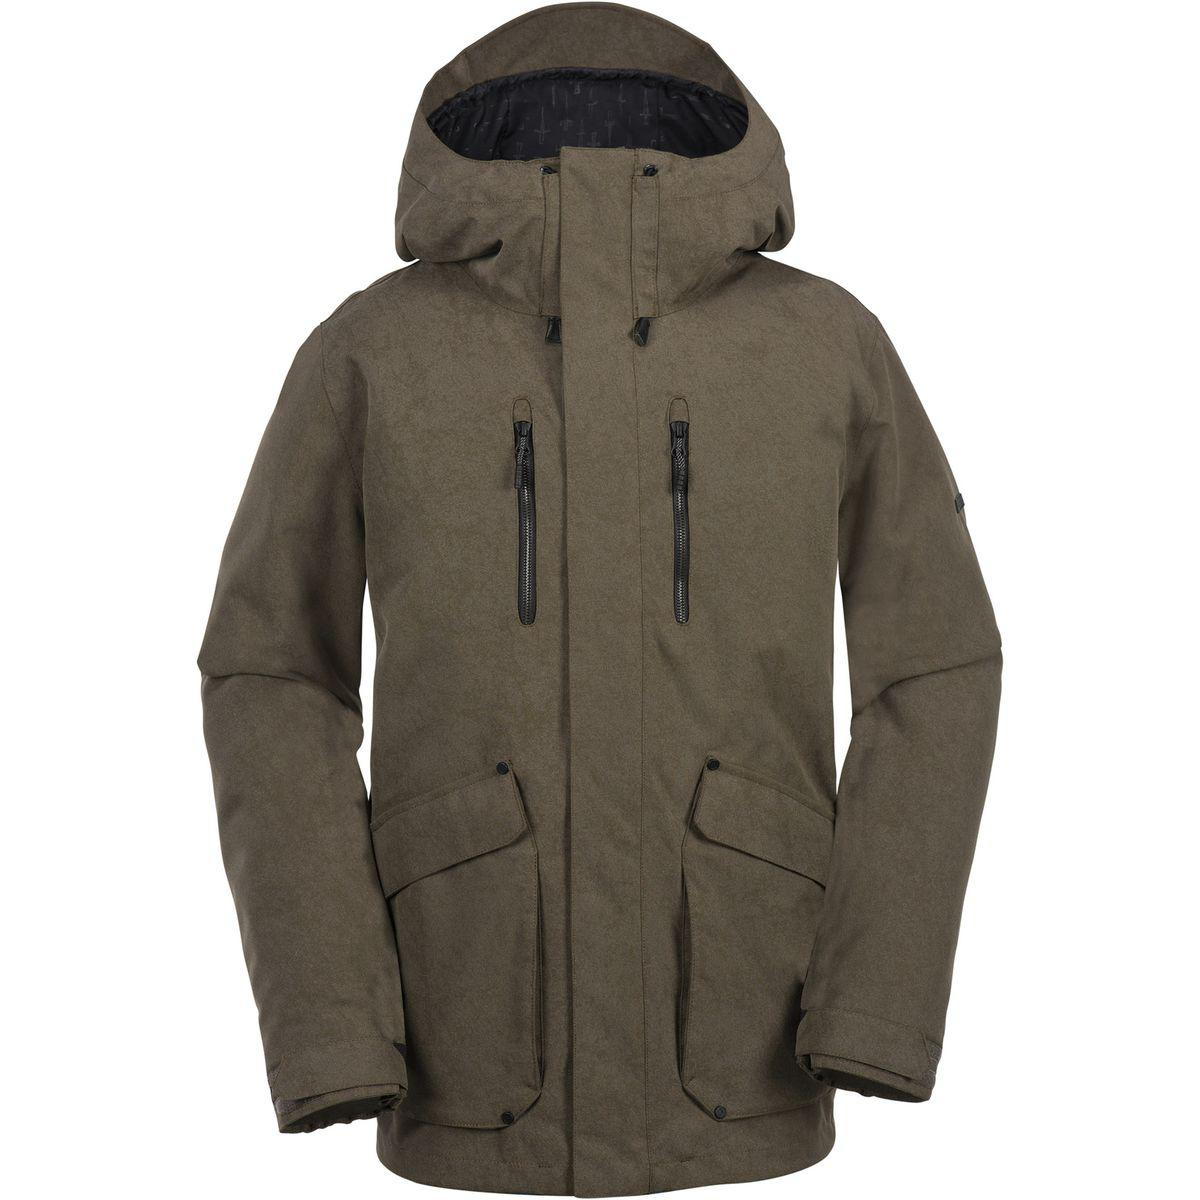 Lyst volcom pat moore insulated 3 in 1 hooded jacket in green for men volcom malvernweather Choice Image